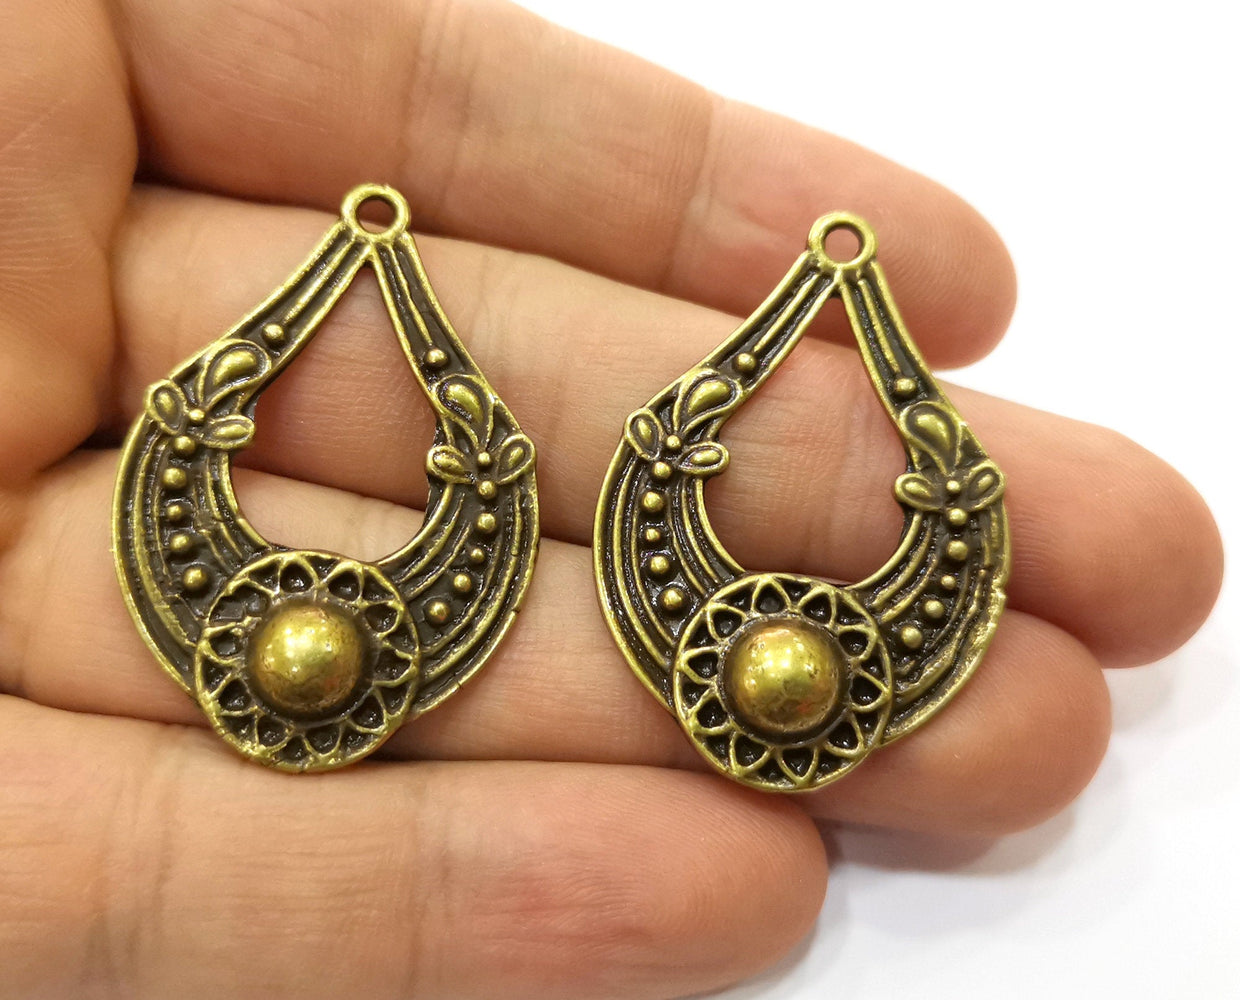 2 Antique Bronze Charms Antique Bronze Plated Charms (42x28mm)  G19235